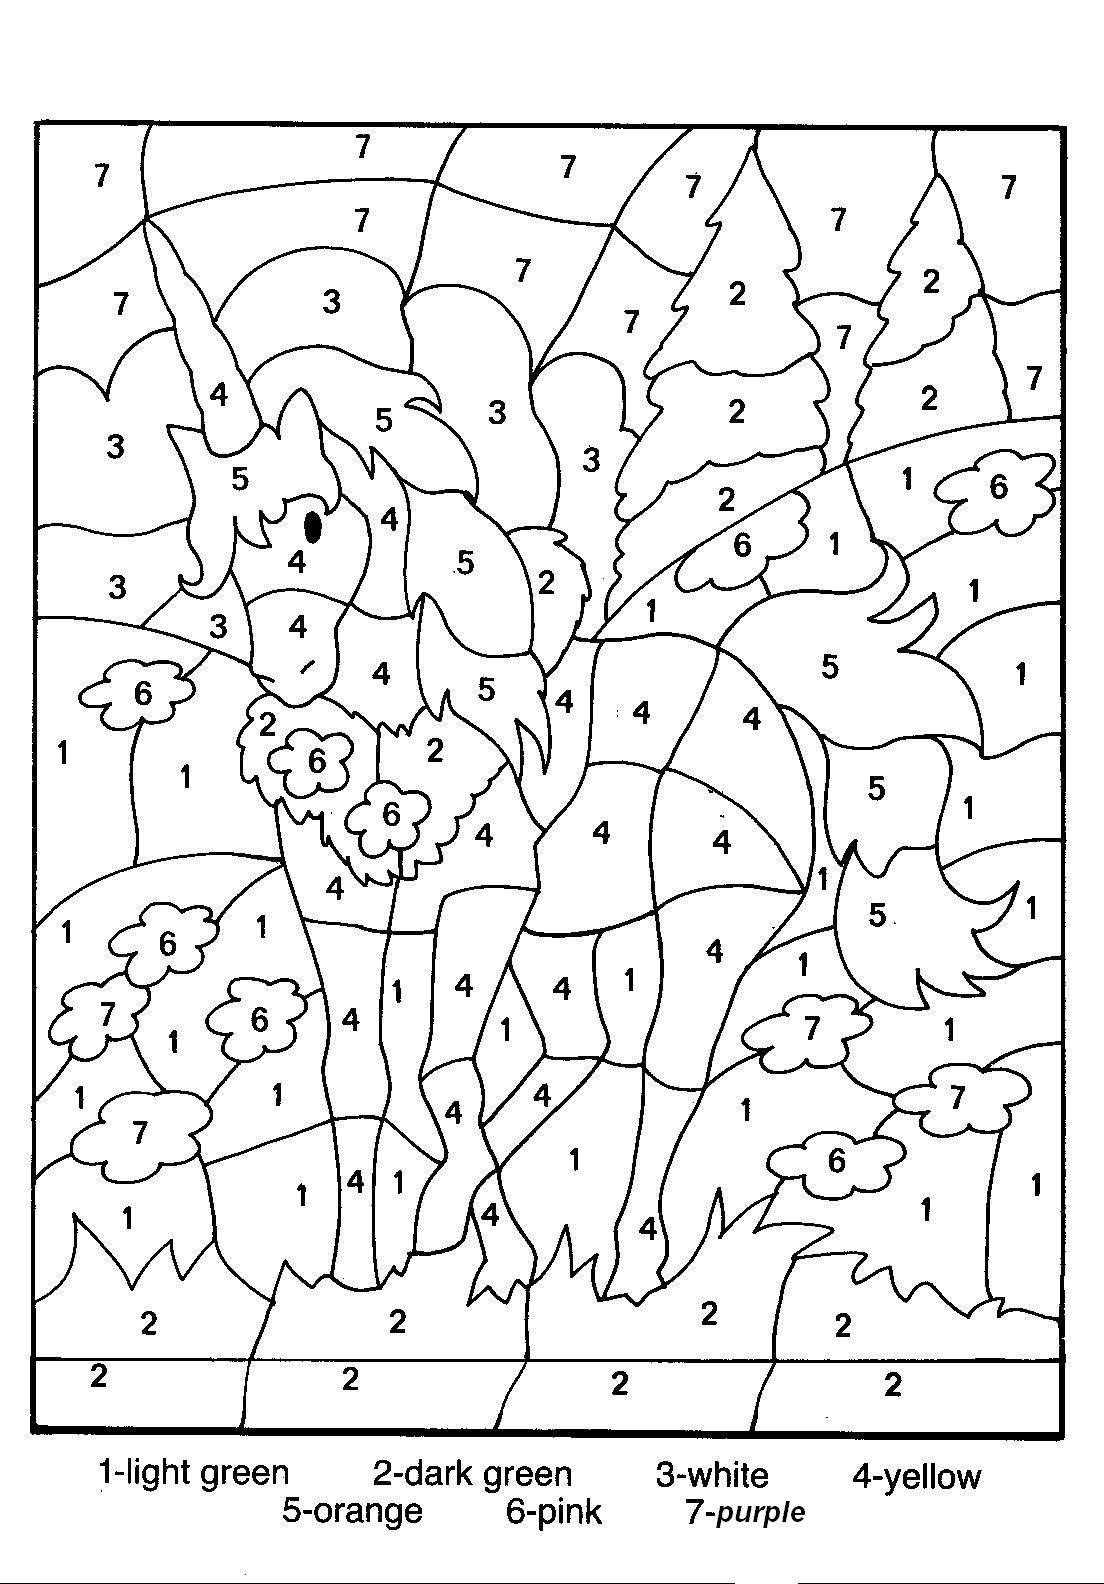 Coloring pages by numbers for kids of trucks - Number Coloring Pages Color By Number Coloring Pages For Kids 10